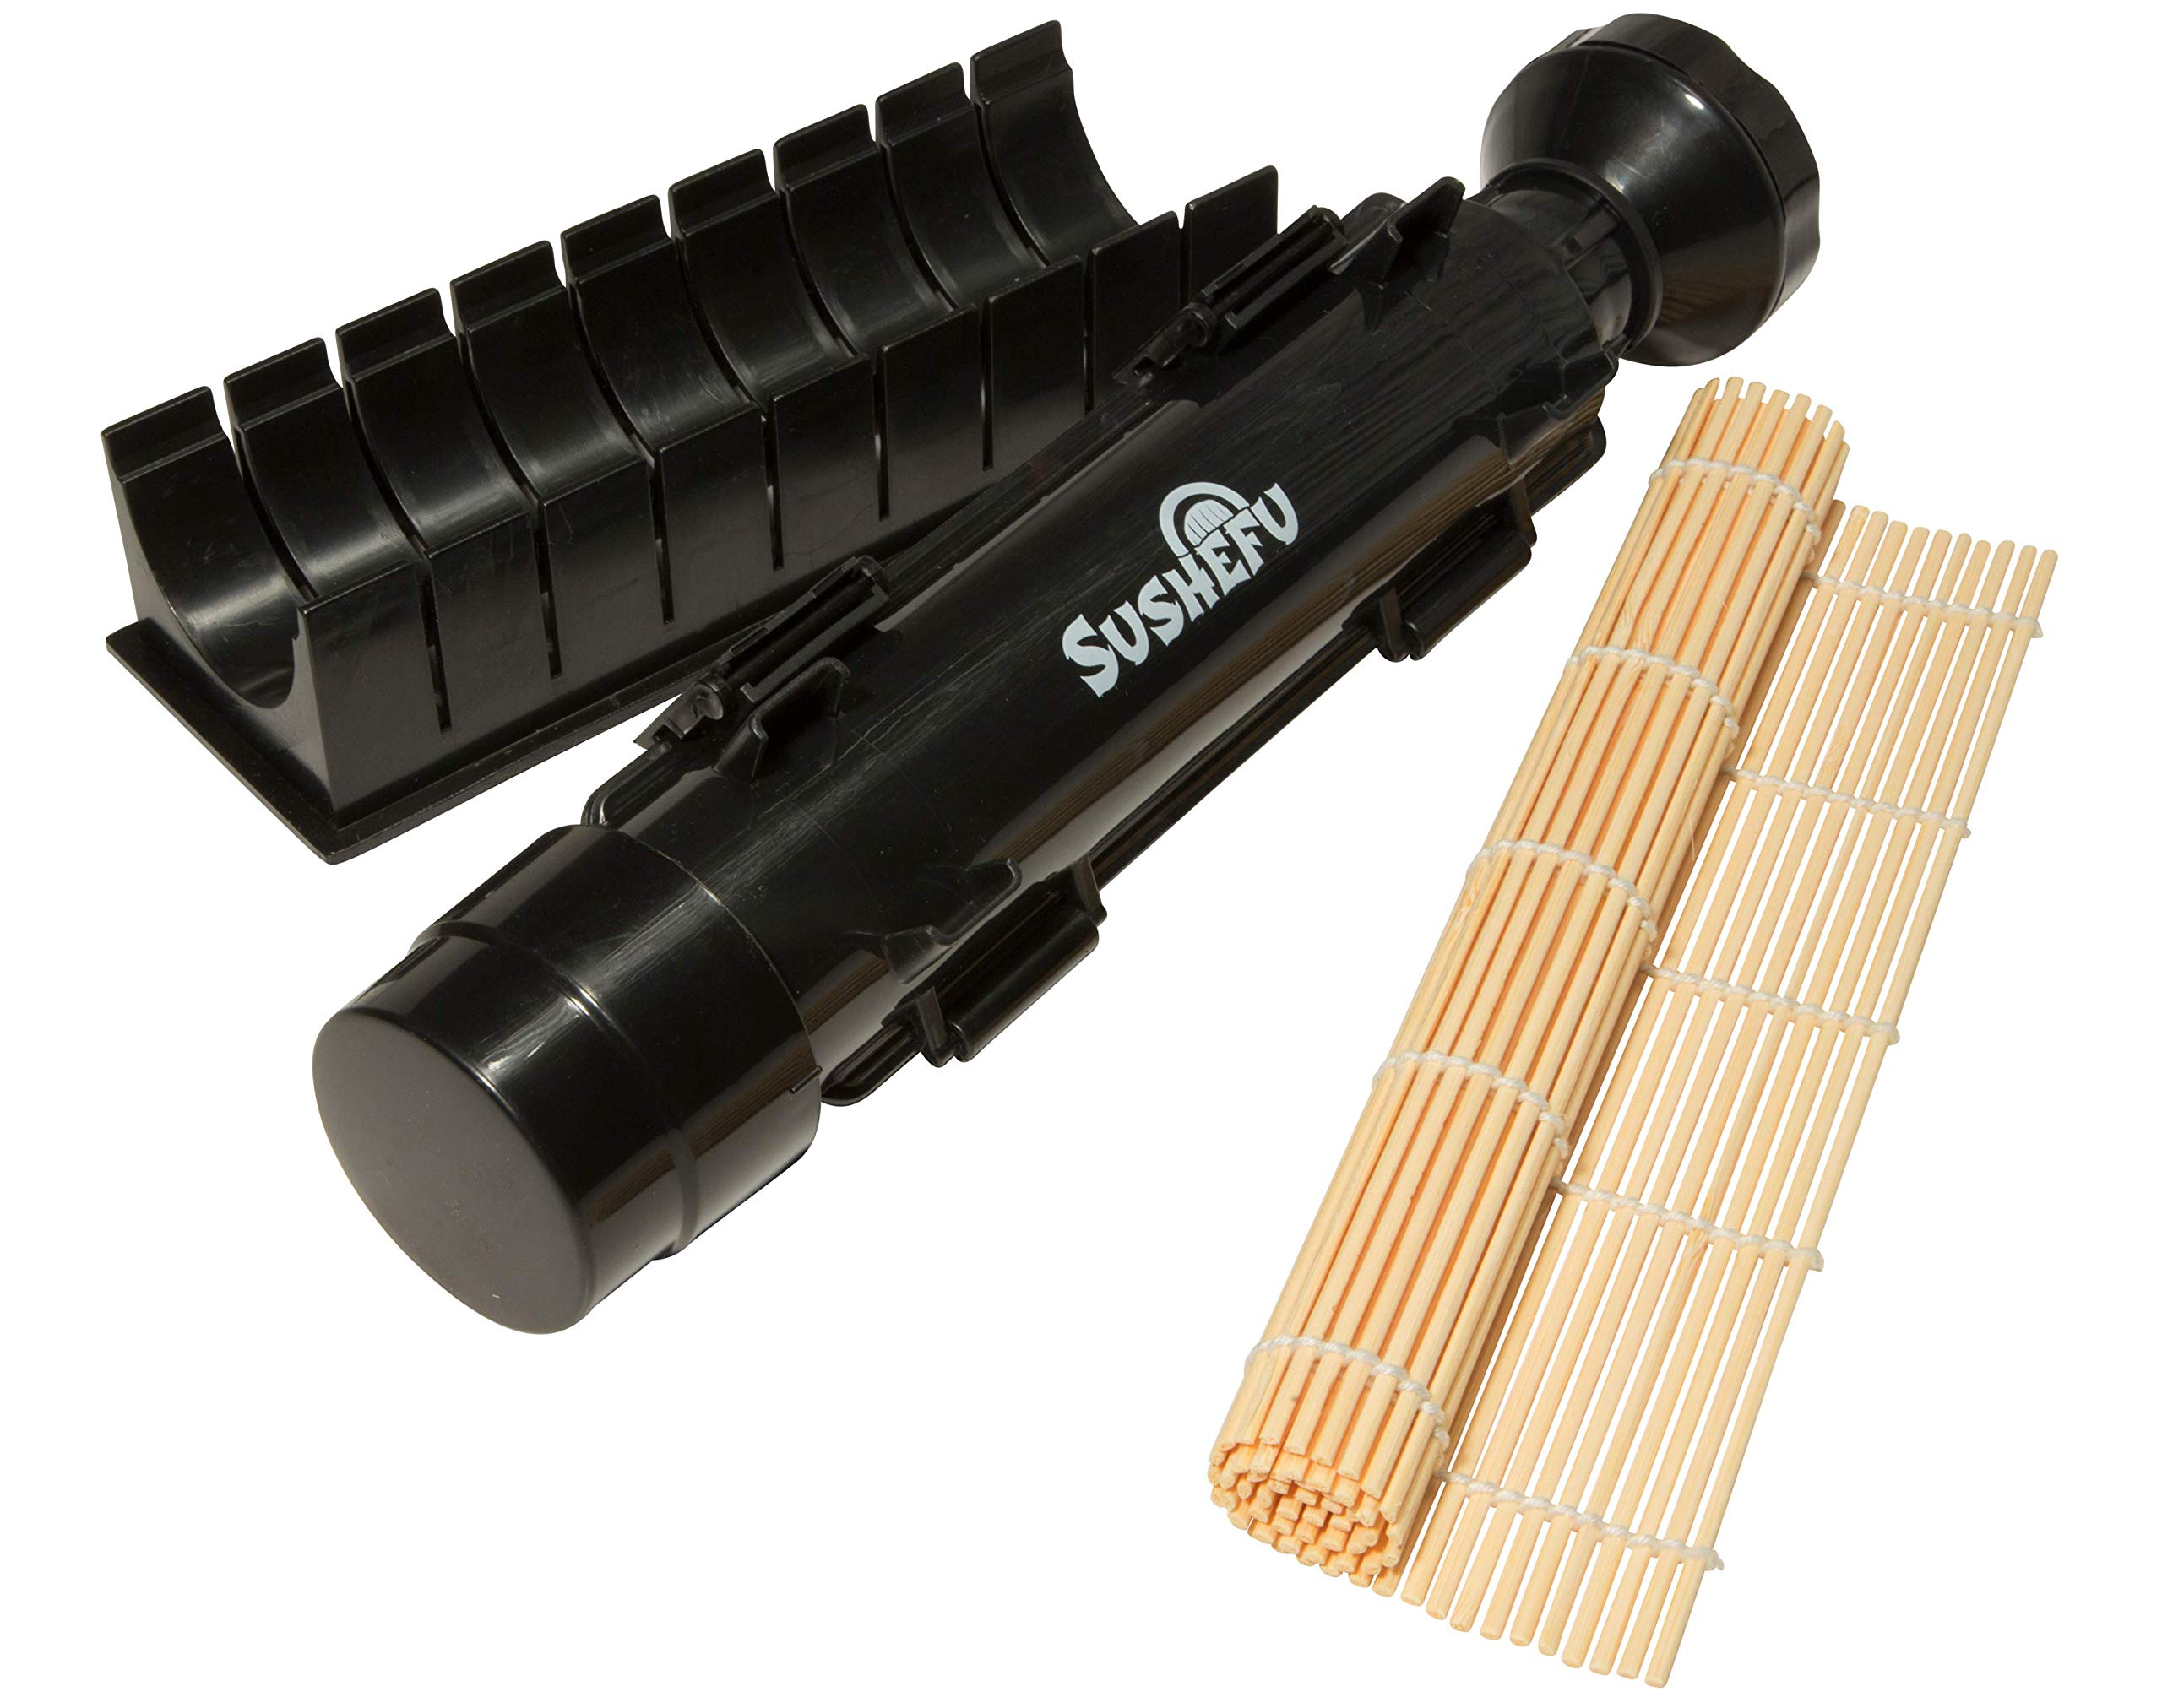 Sushi Bazooka Maker - Food Quality All in 1 Sushi Roller with Bamboo Mat and Slicer - Full Instructions and Recipe eBook Included - Black by Sushefu (Image #1)